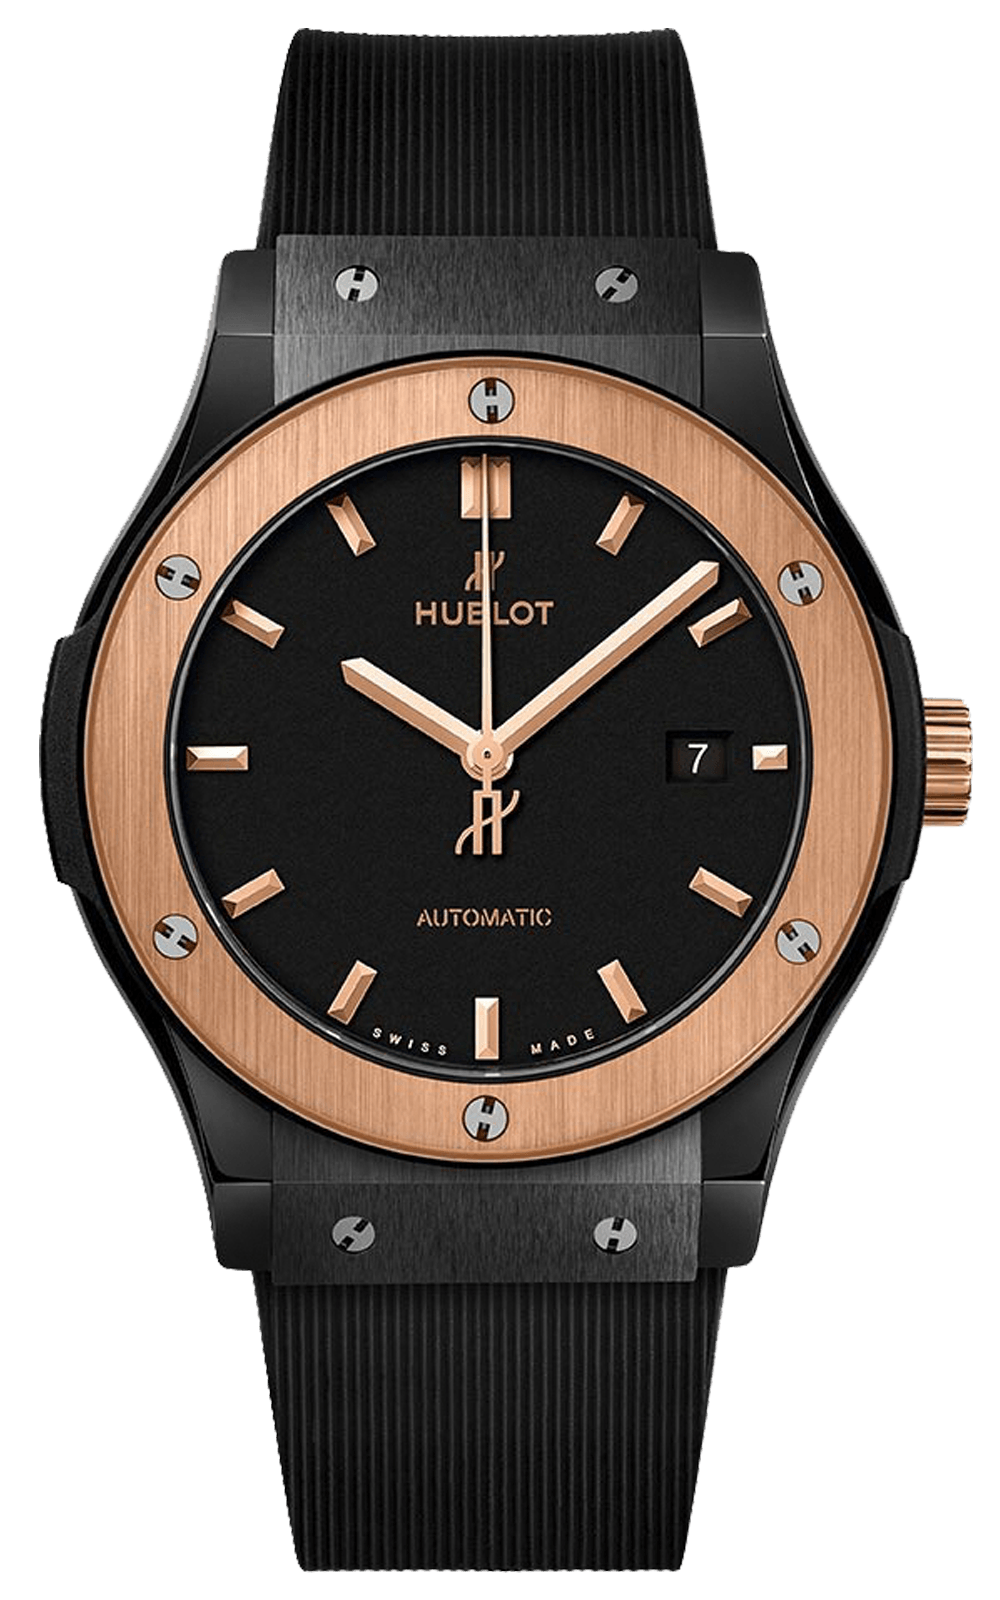 Hình Đồng hồ Hublot Classic Fusion Automatic 42mm Mens Watch 565.CO.1181.RX